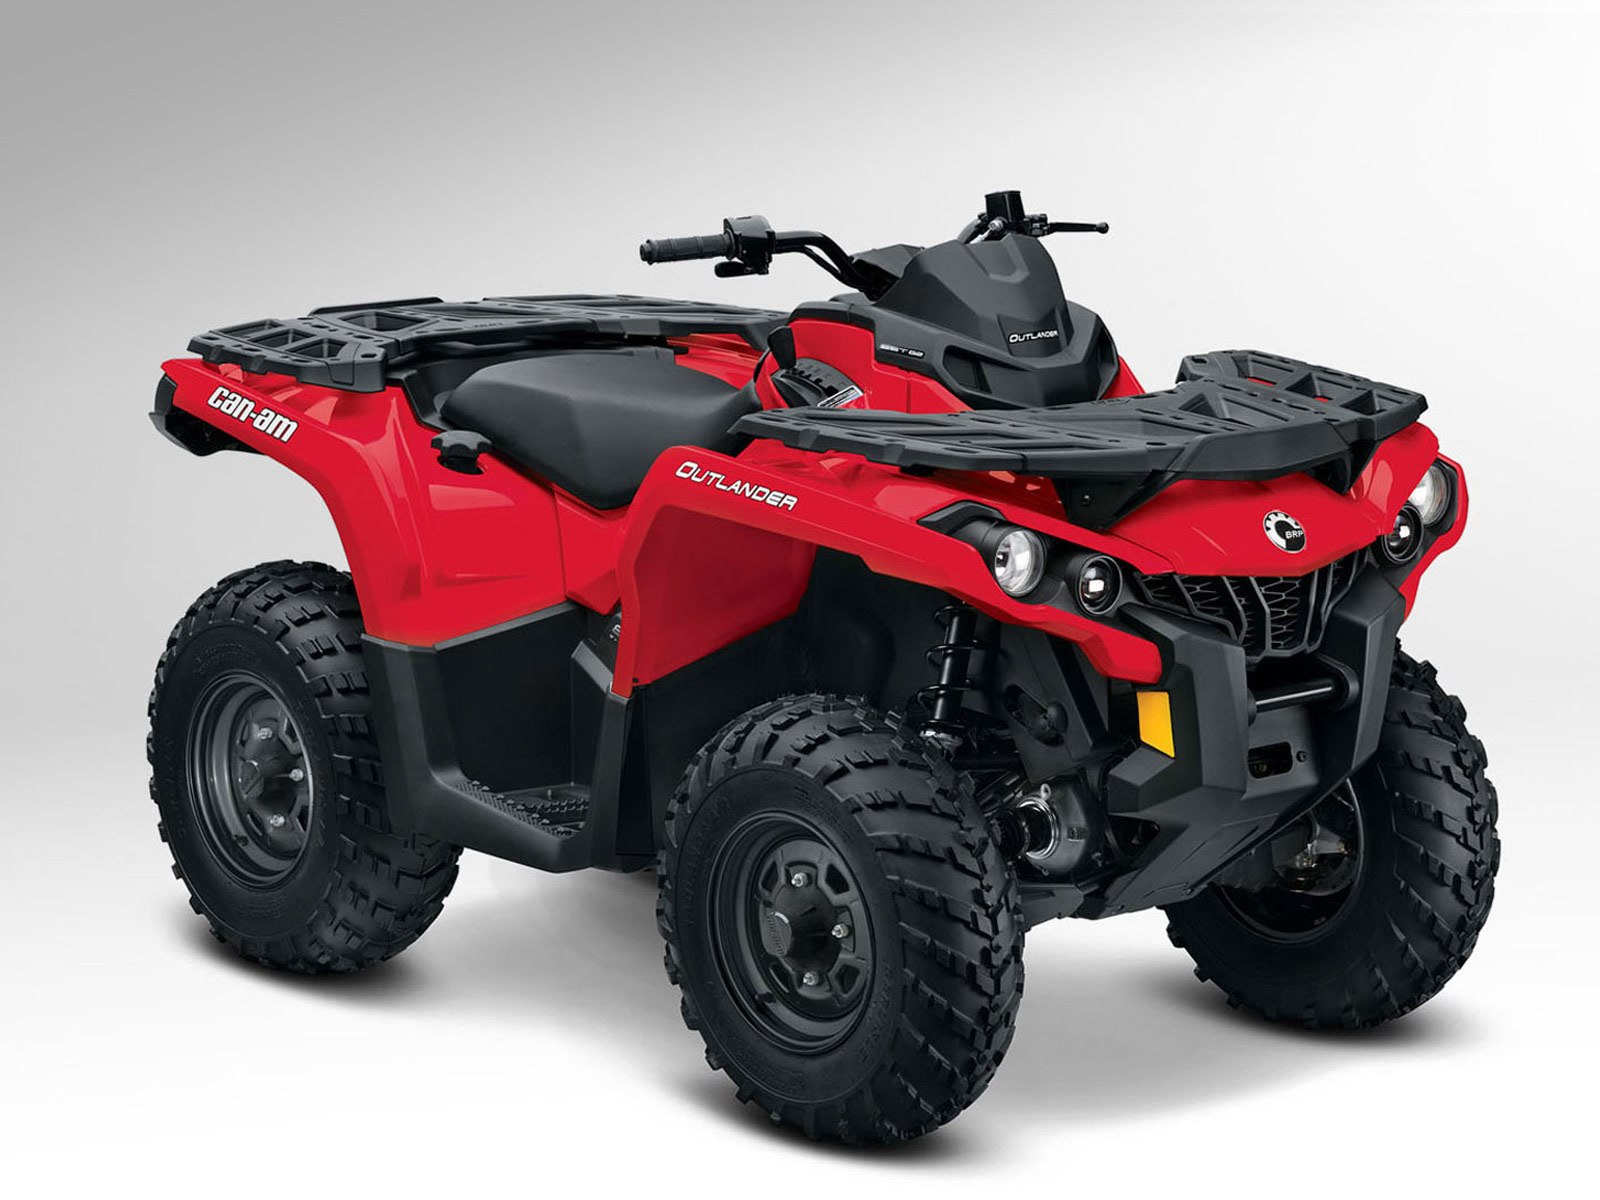 2013 Can-Am Outlander 800R ATV pictures. 480x360 pixels